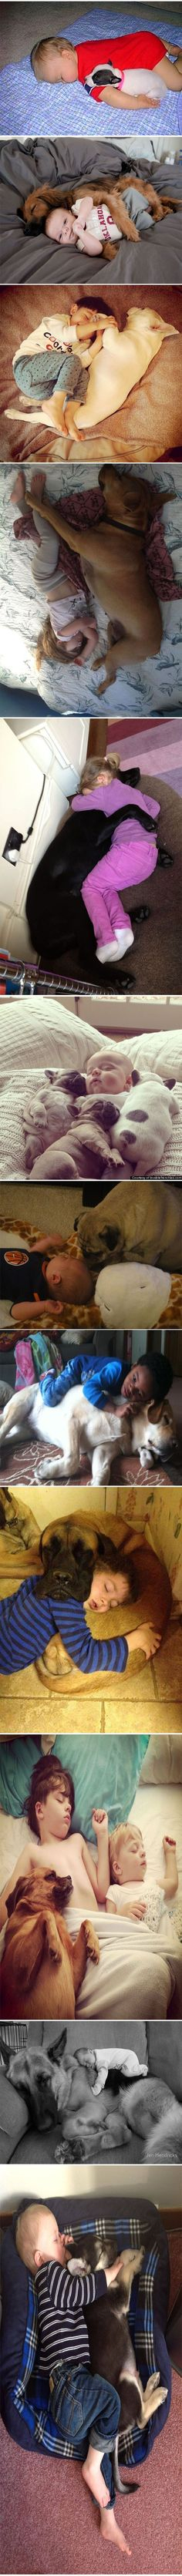 Why kids need dogs